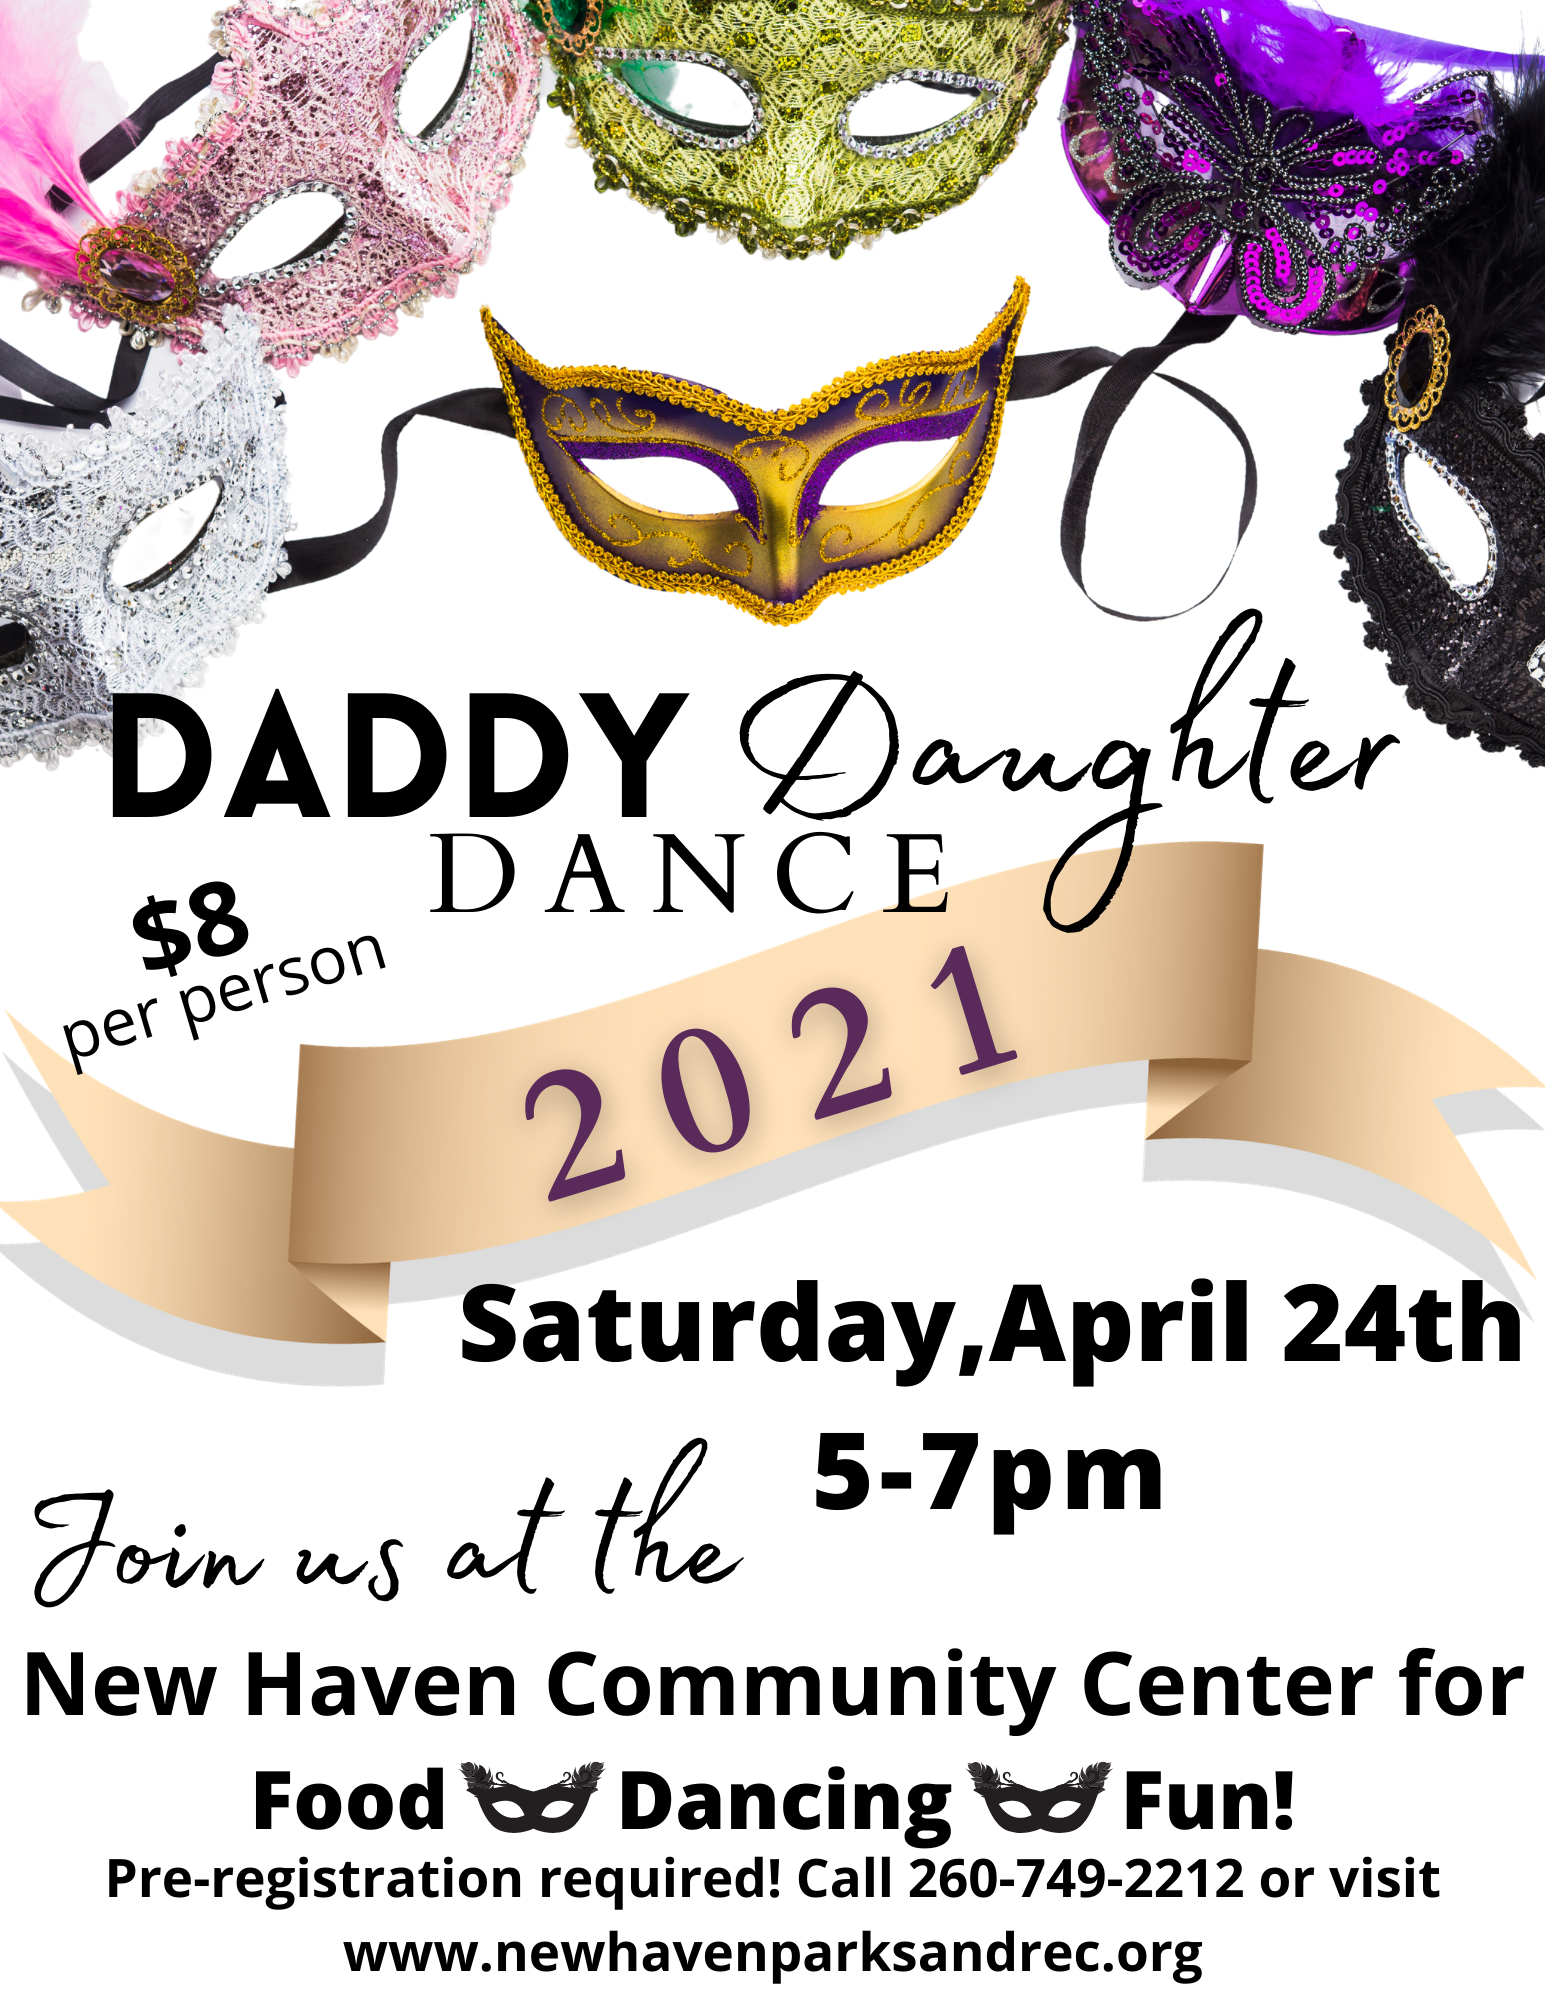 Daddy Daughter Dance 2021 flyer